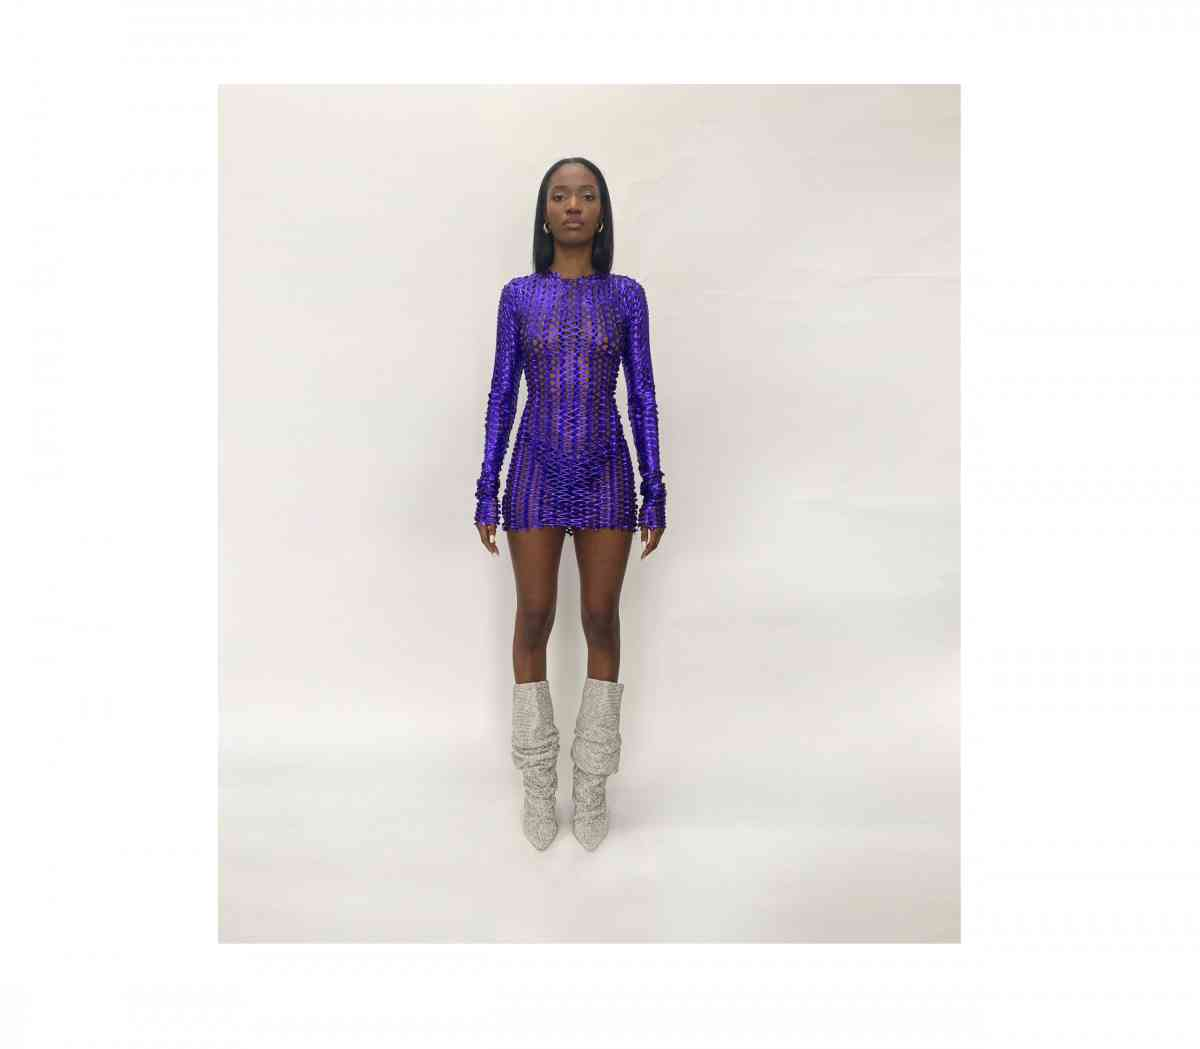 PURPLE METALLIC MINI DRESS by TLZ-L'FEMME, available on tlzlf.com for $275 Kylie Jenner Dress Exact Product